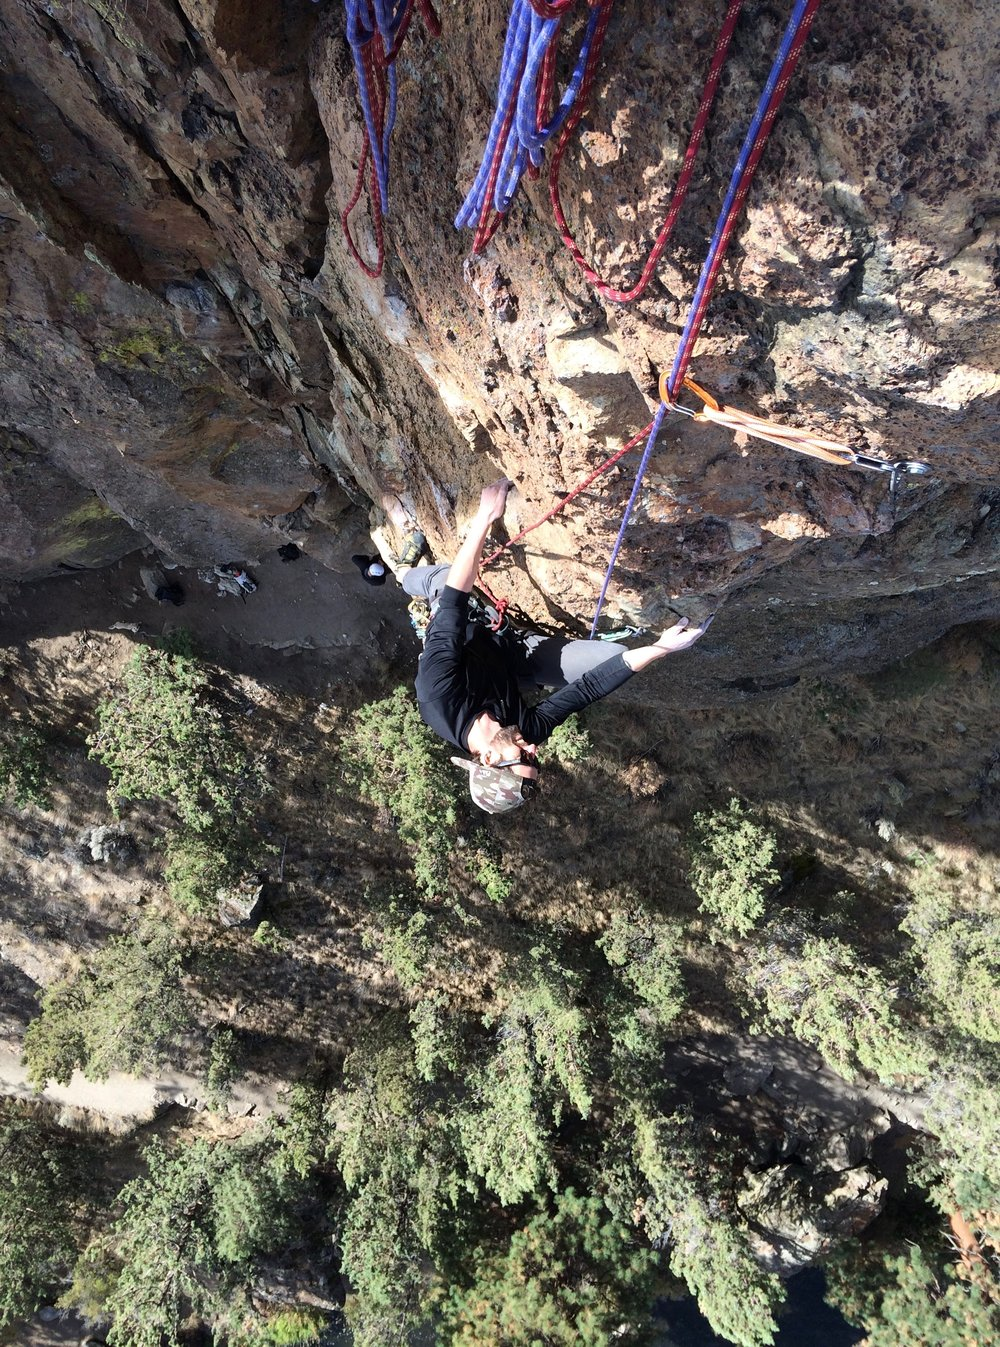 Dave Henkel and Gavin come up pitch 2 of European Vancation, Smith Rock, Oregon, USA